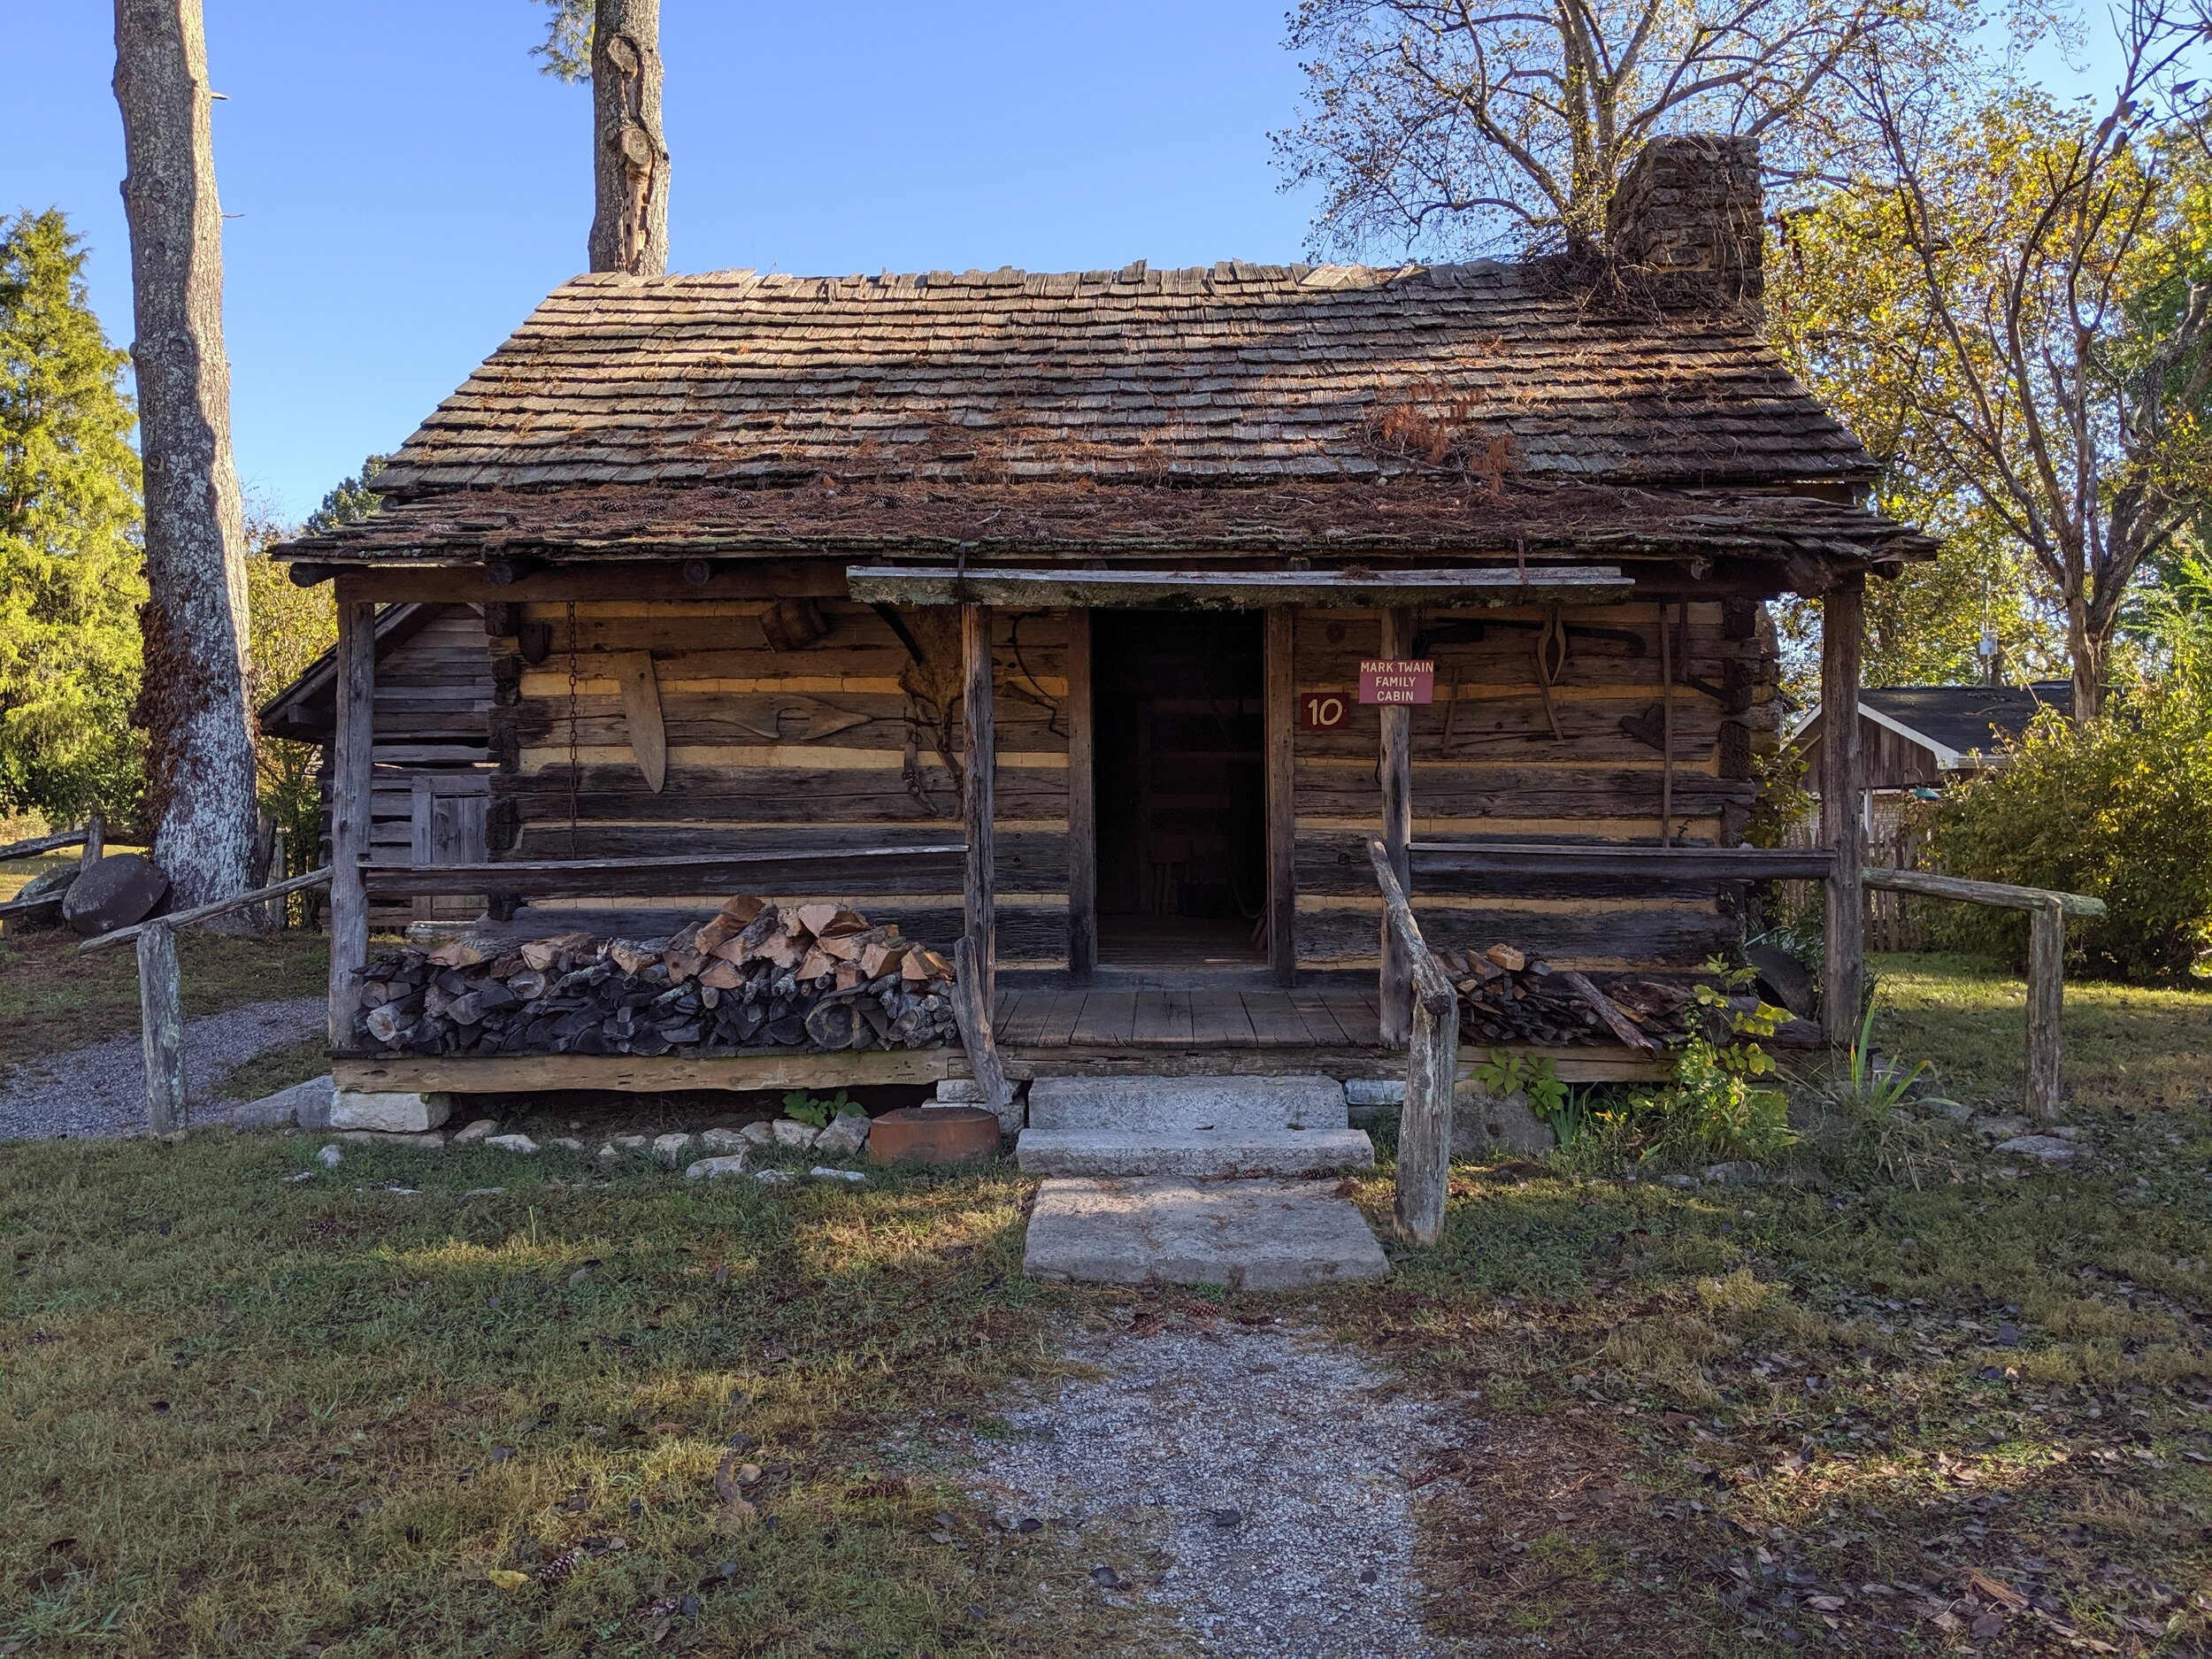 They moved this cabin from the spot where Mark Twain was apparently conceived (but never lived).